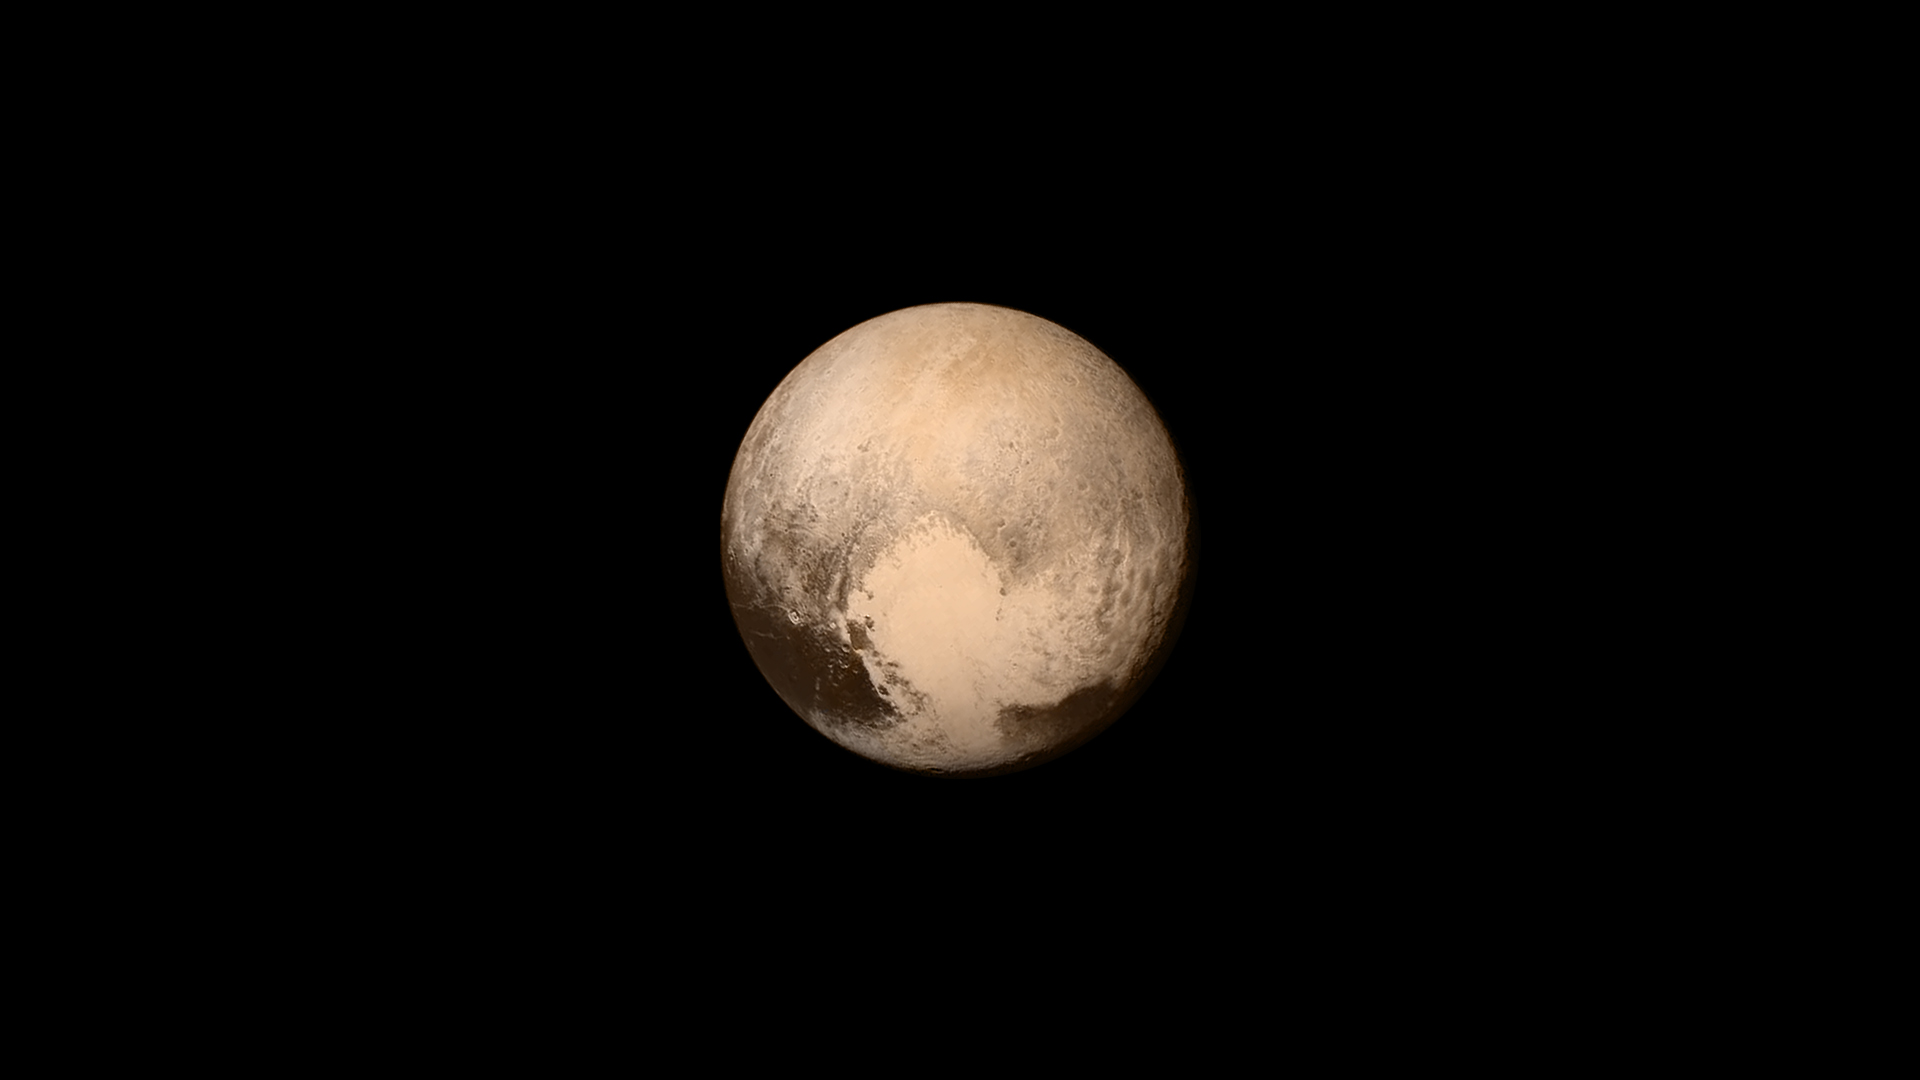 Pluto as seen in July, 2015